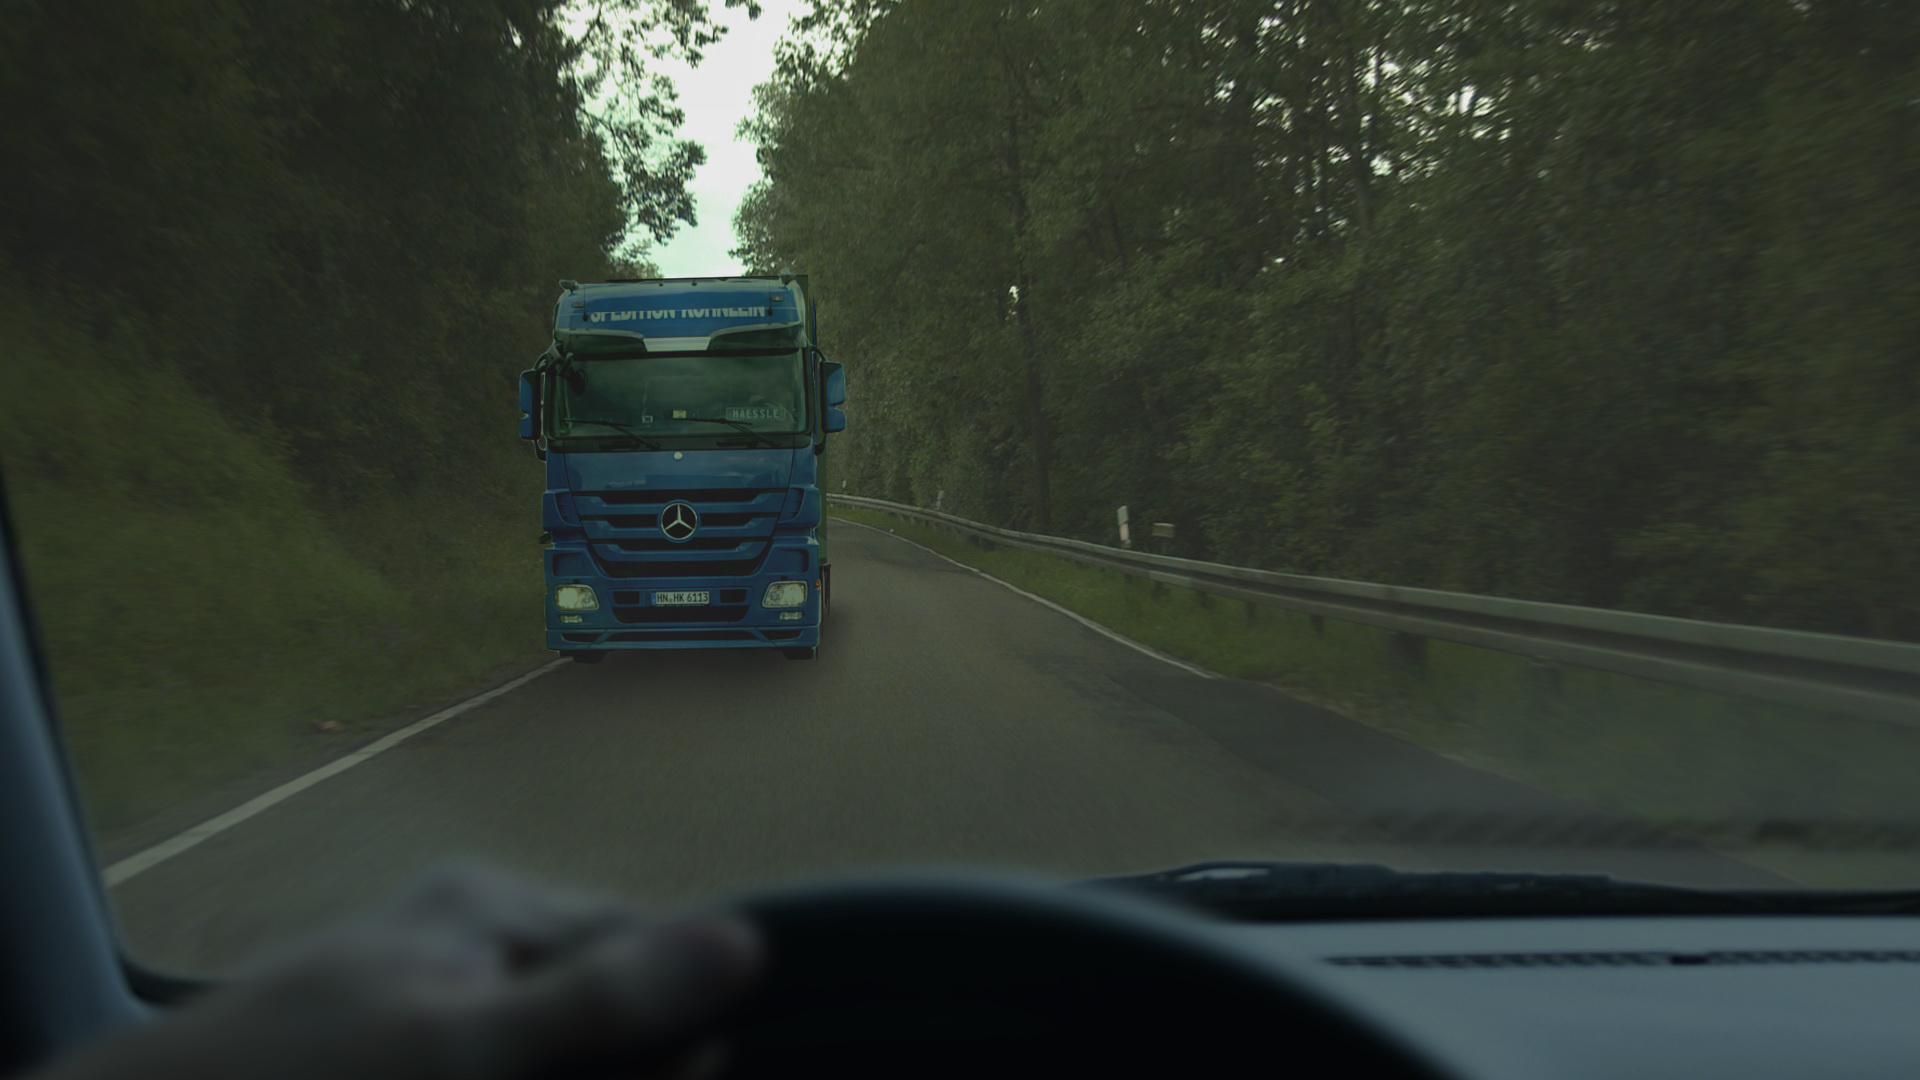 Compositing of the windscreen